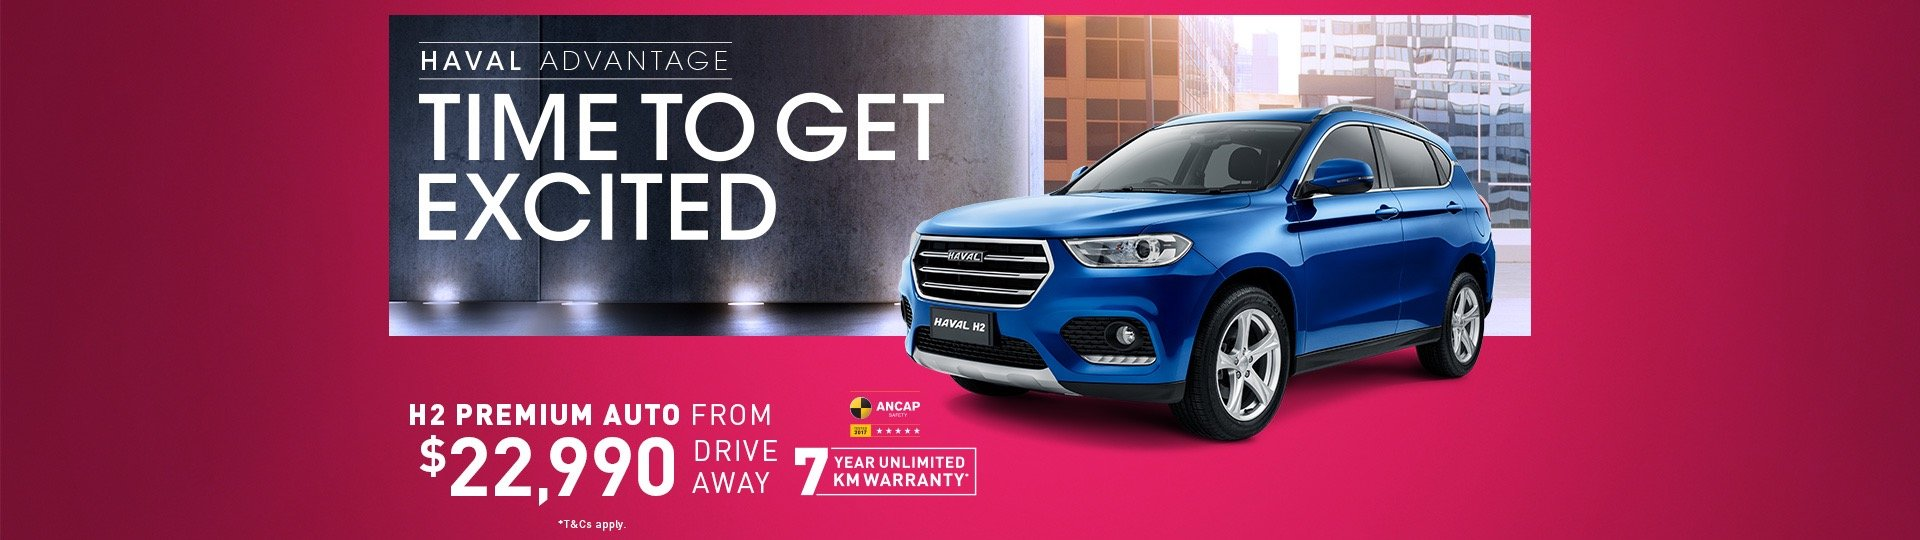 Haval H2 from $22,990 driveaway